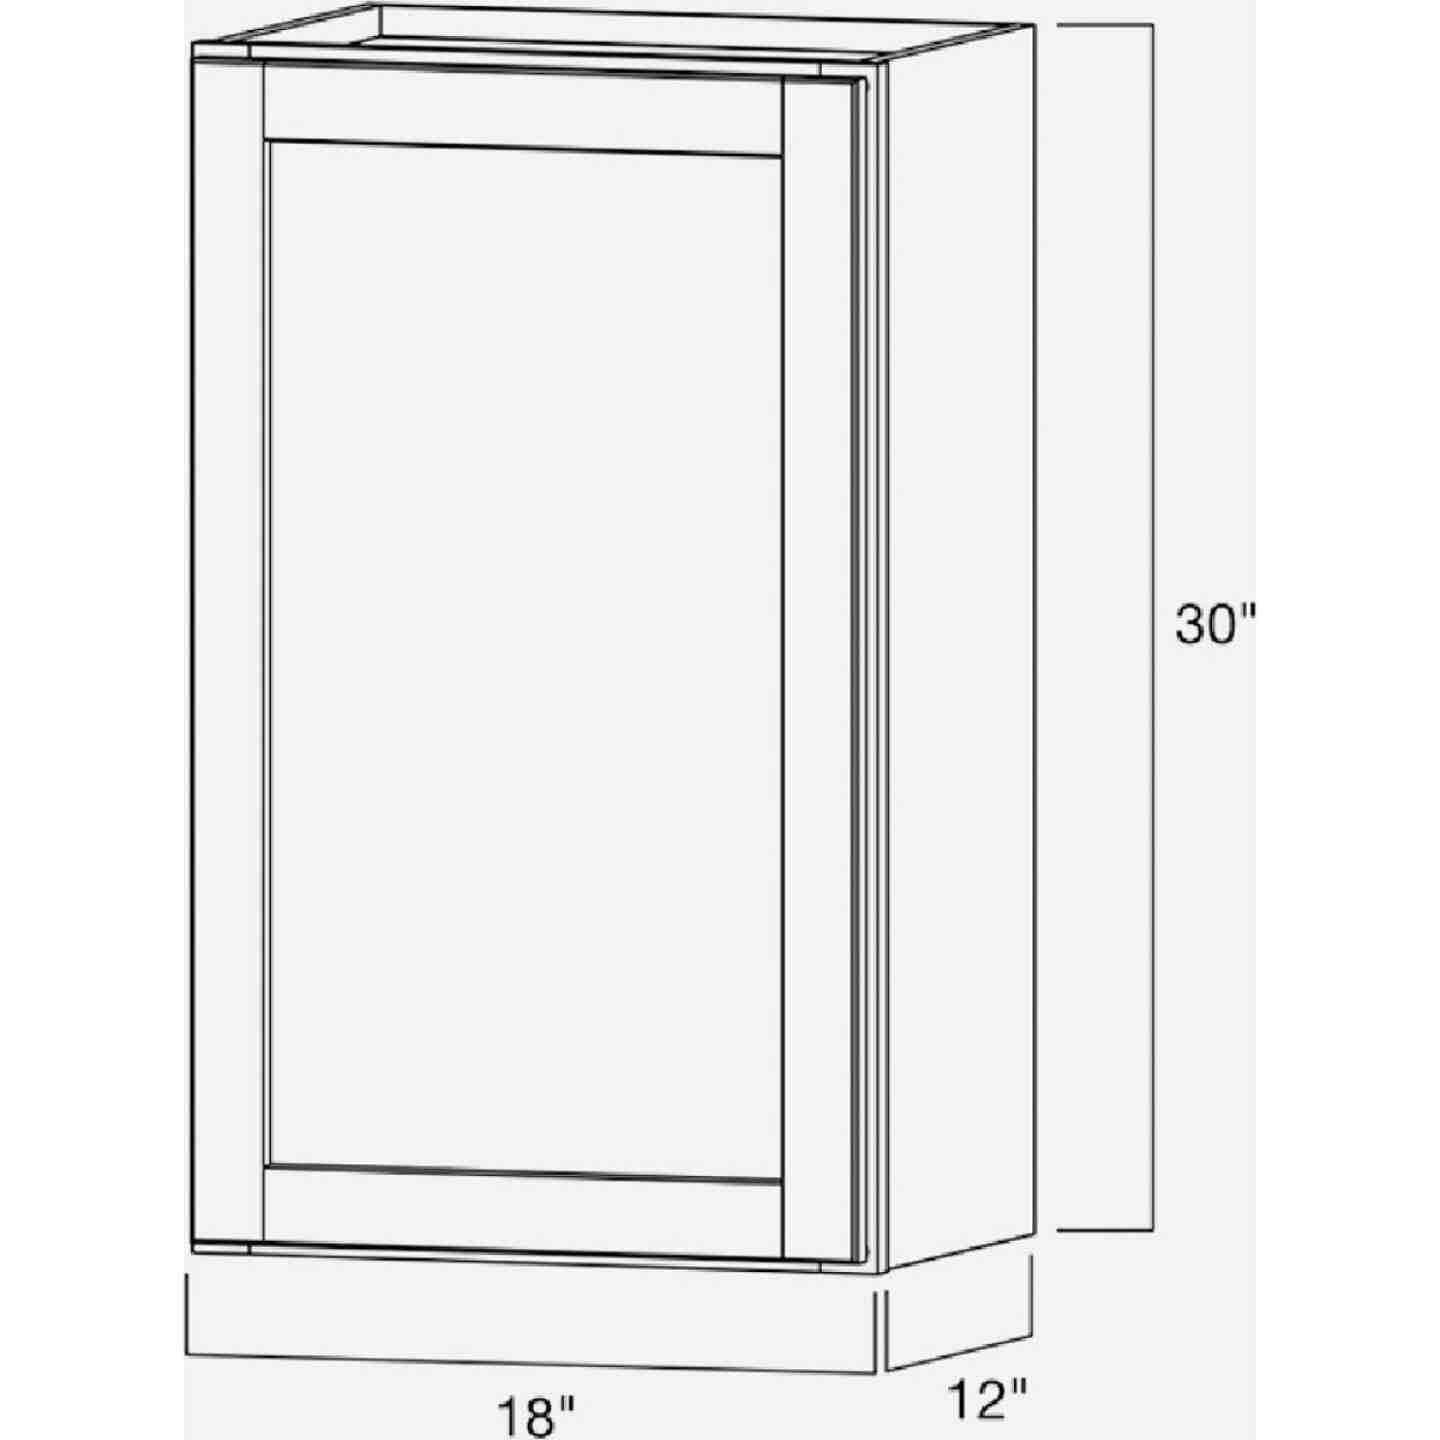 Continental Cabinets Andover Shaker 18 In. W x 30 In. H x 12 In. D White Thermofoil Wall Kitchen Cabinet Image 5